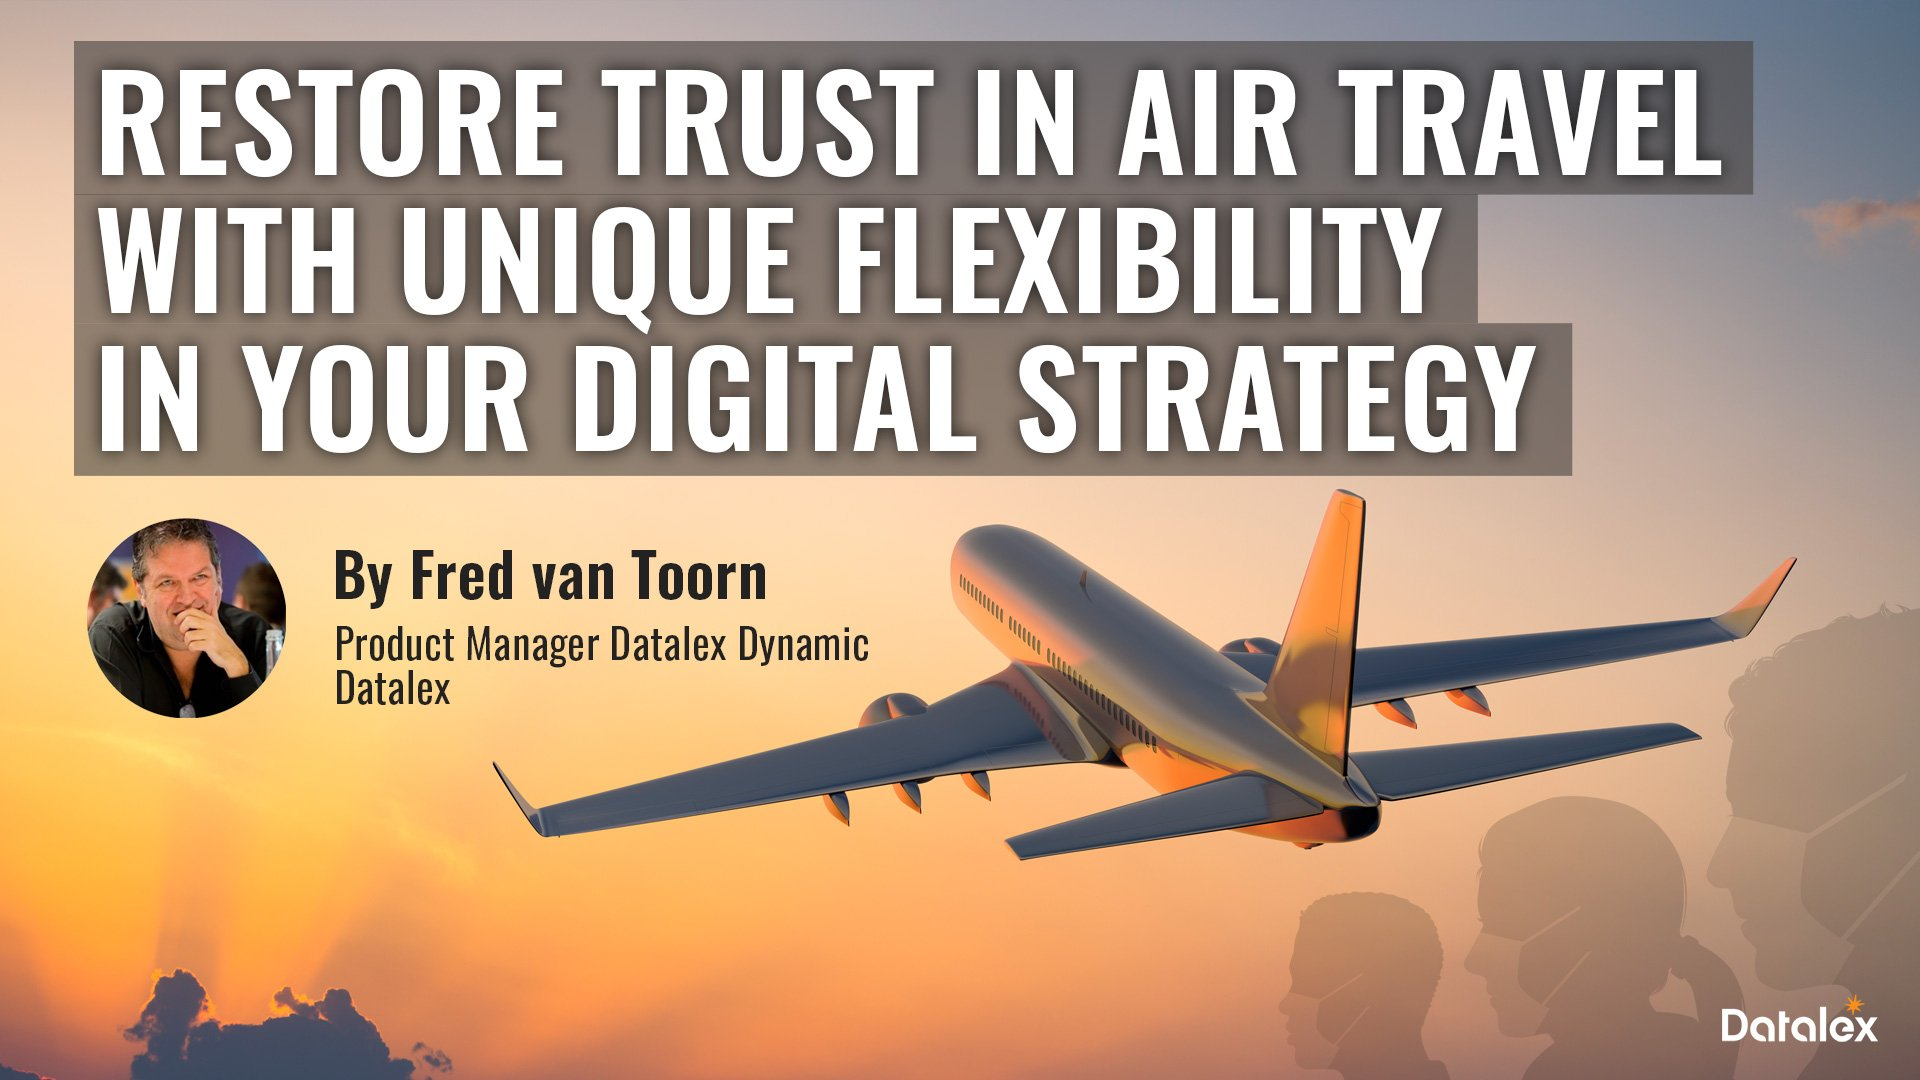 RestoreTrustRestore trust in air travel with unique flexibility in your digital strategy